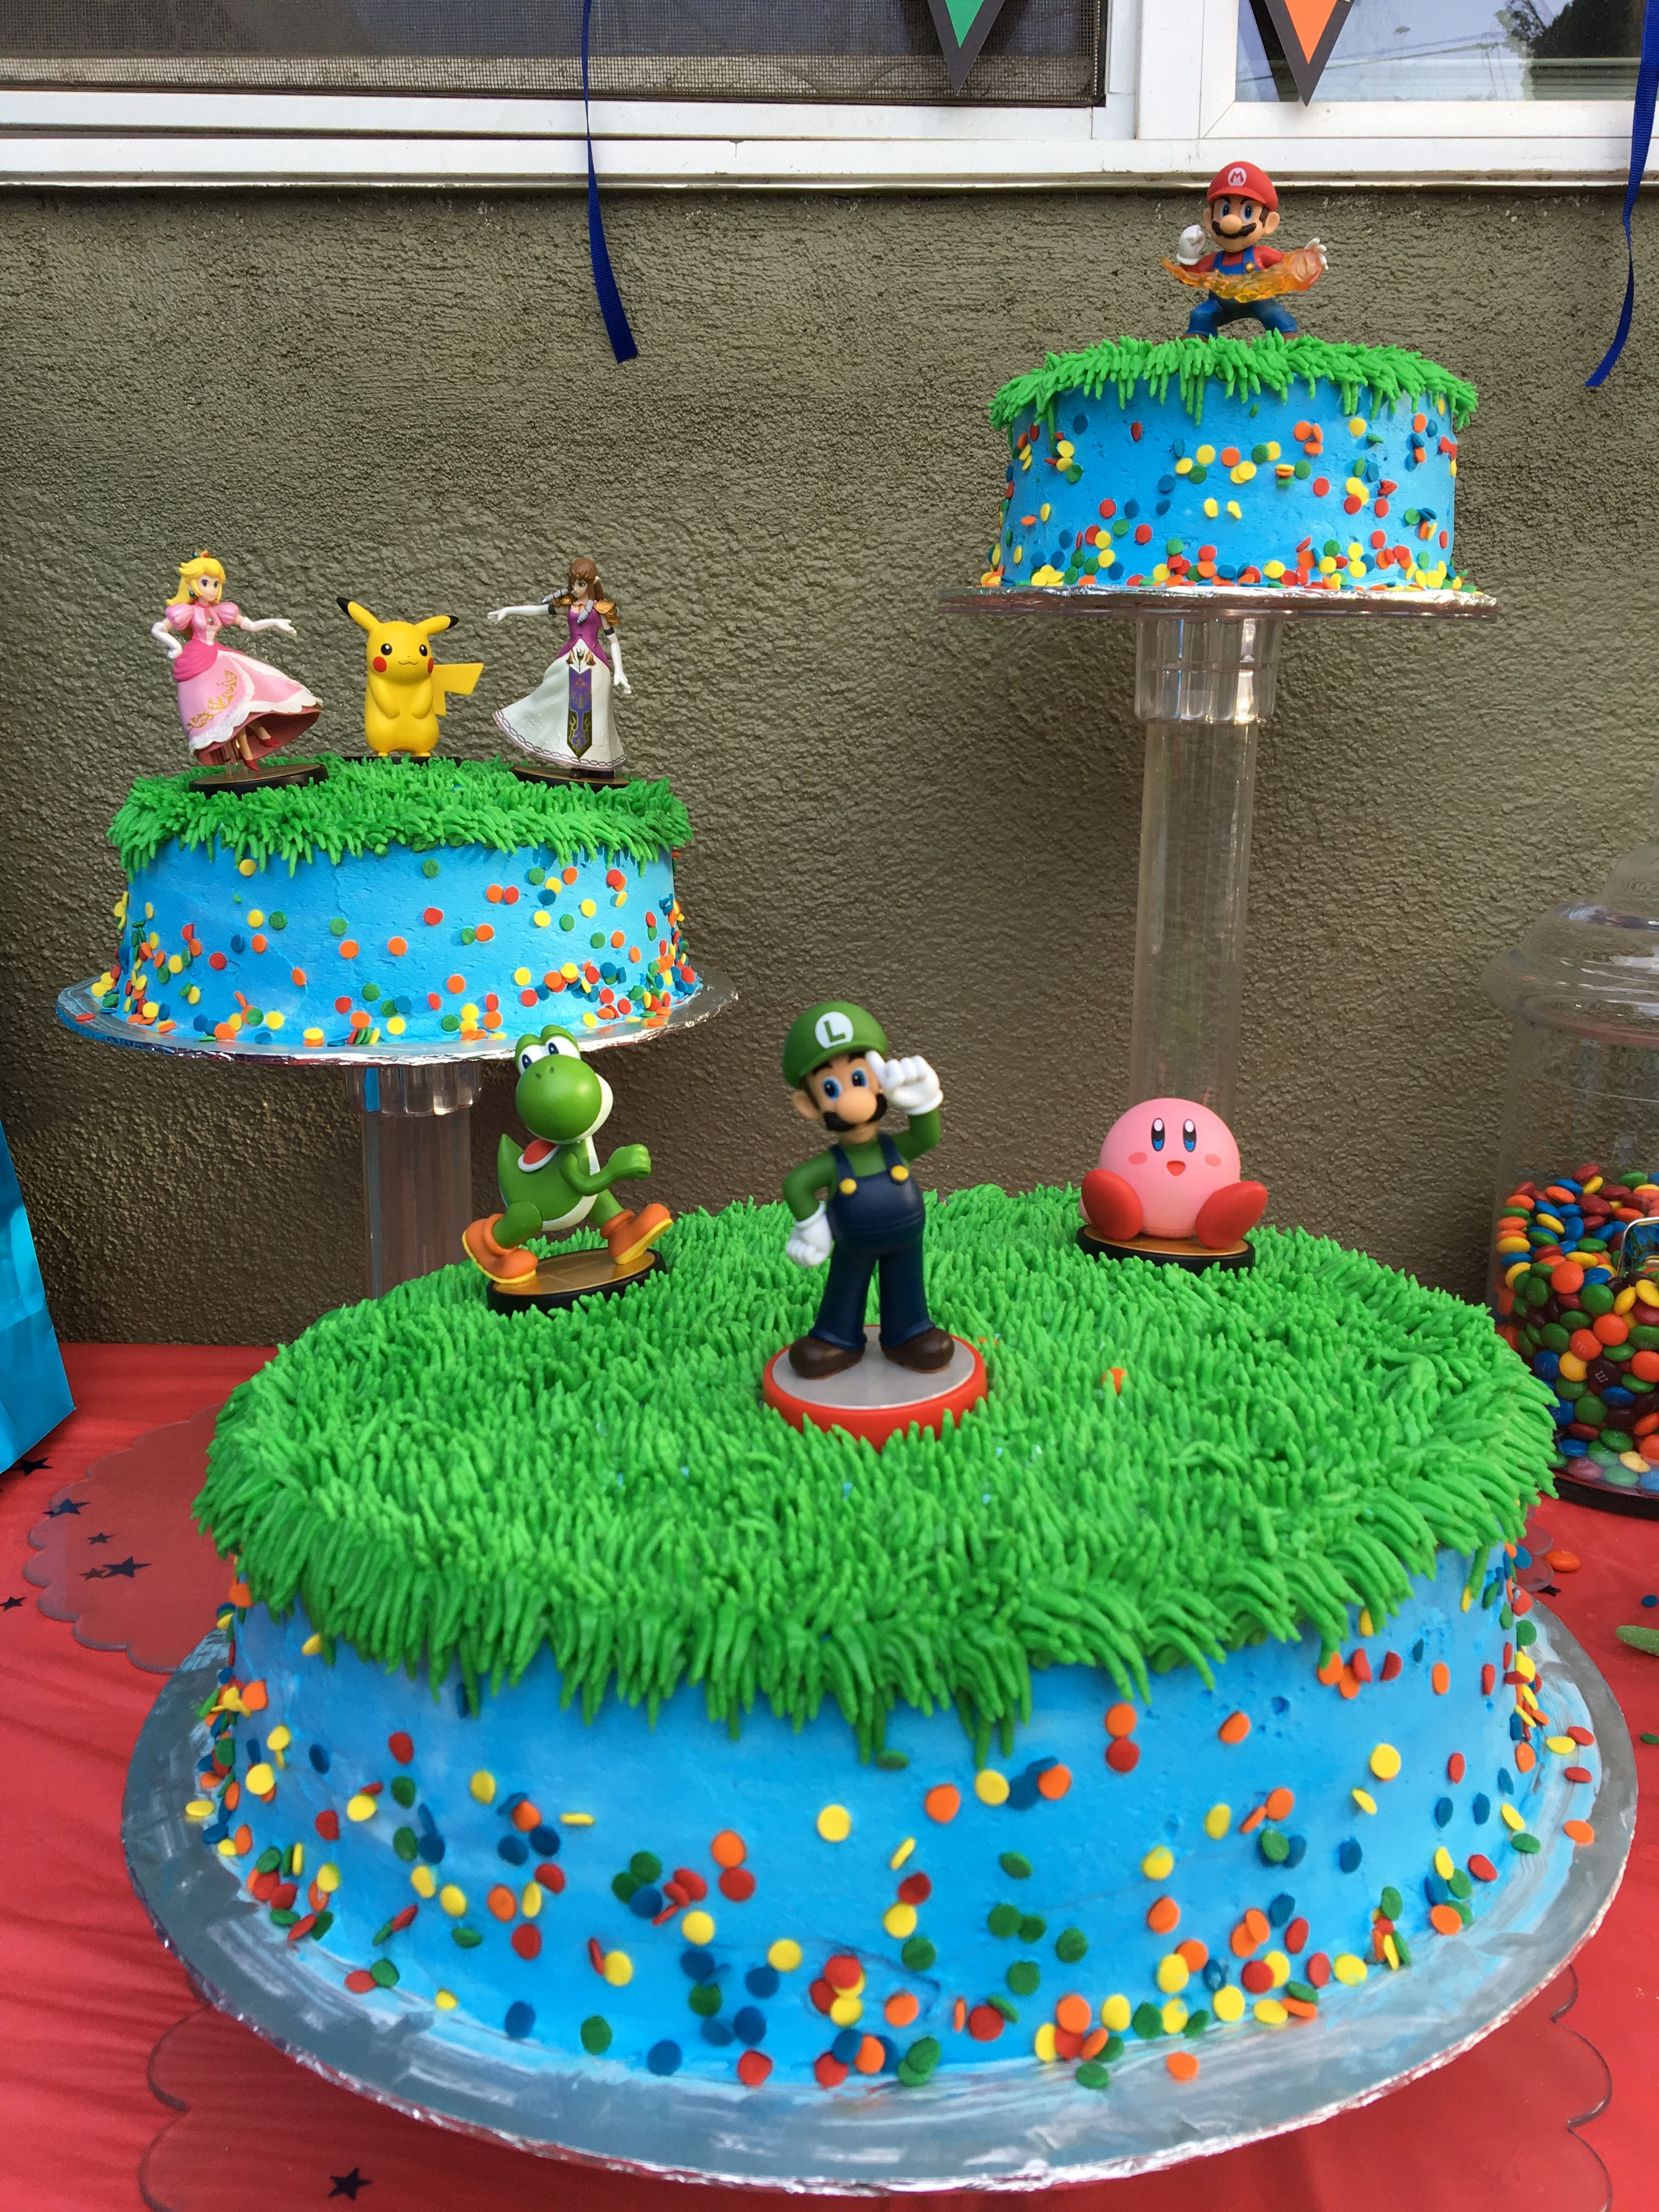 Super Smash Bros Themed Cake After Looking Around I